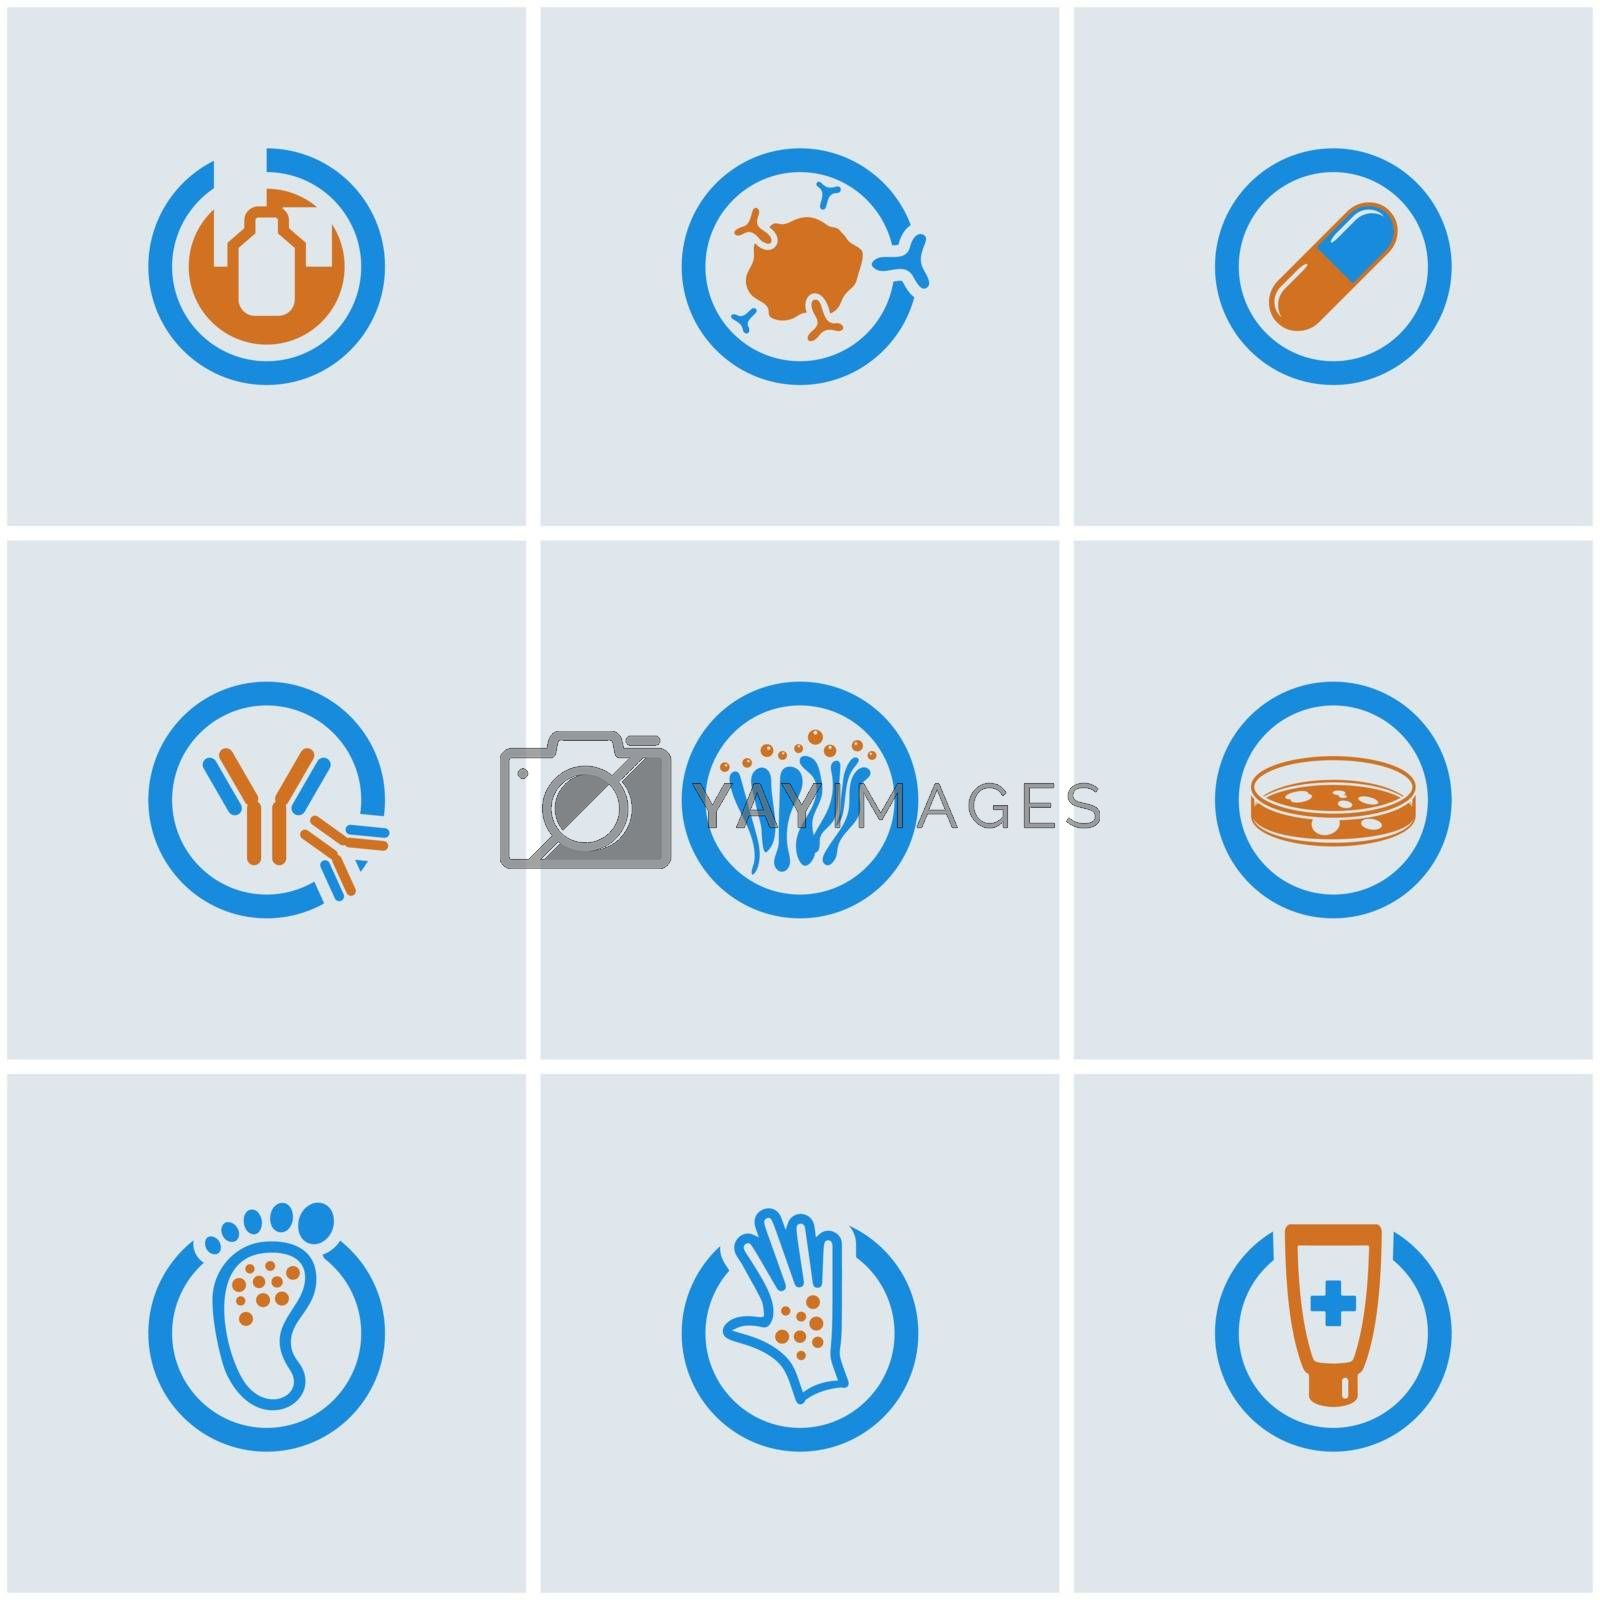 Blue-Orange vector set of medical web icons